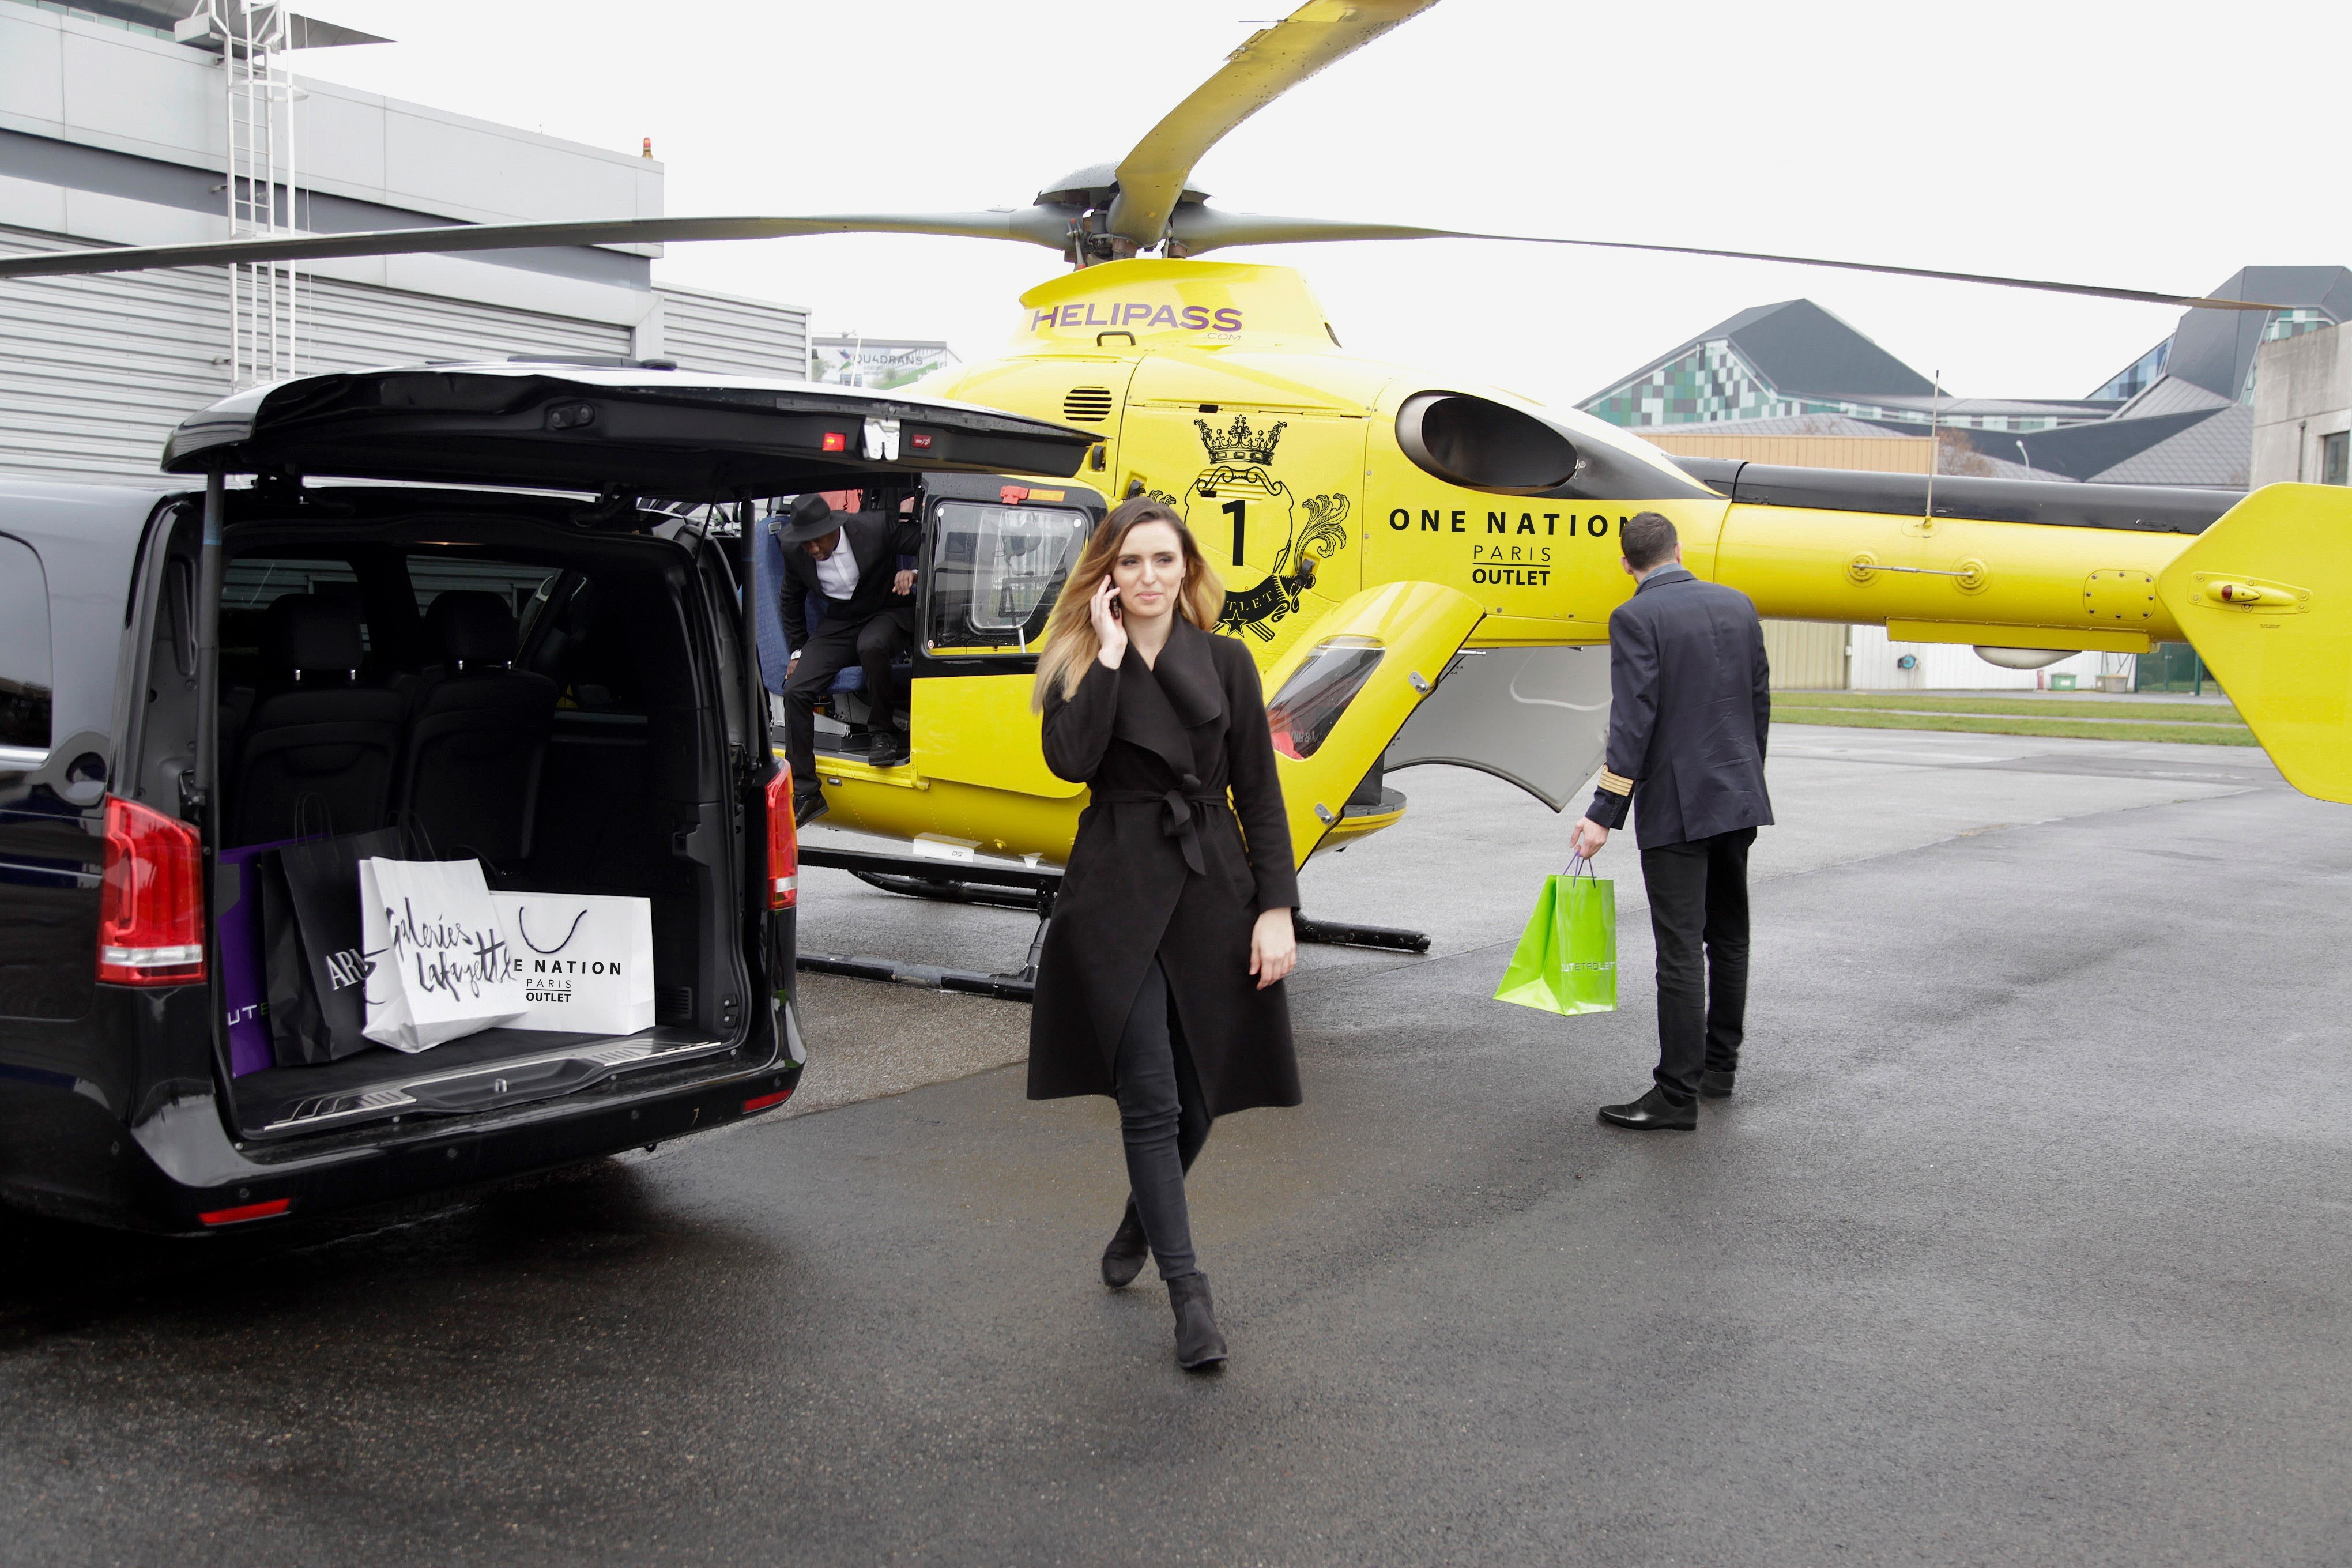 one nation helicopter transfer